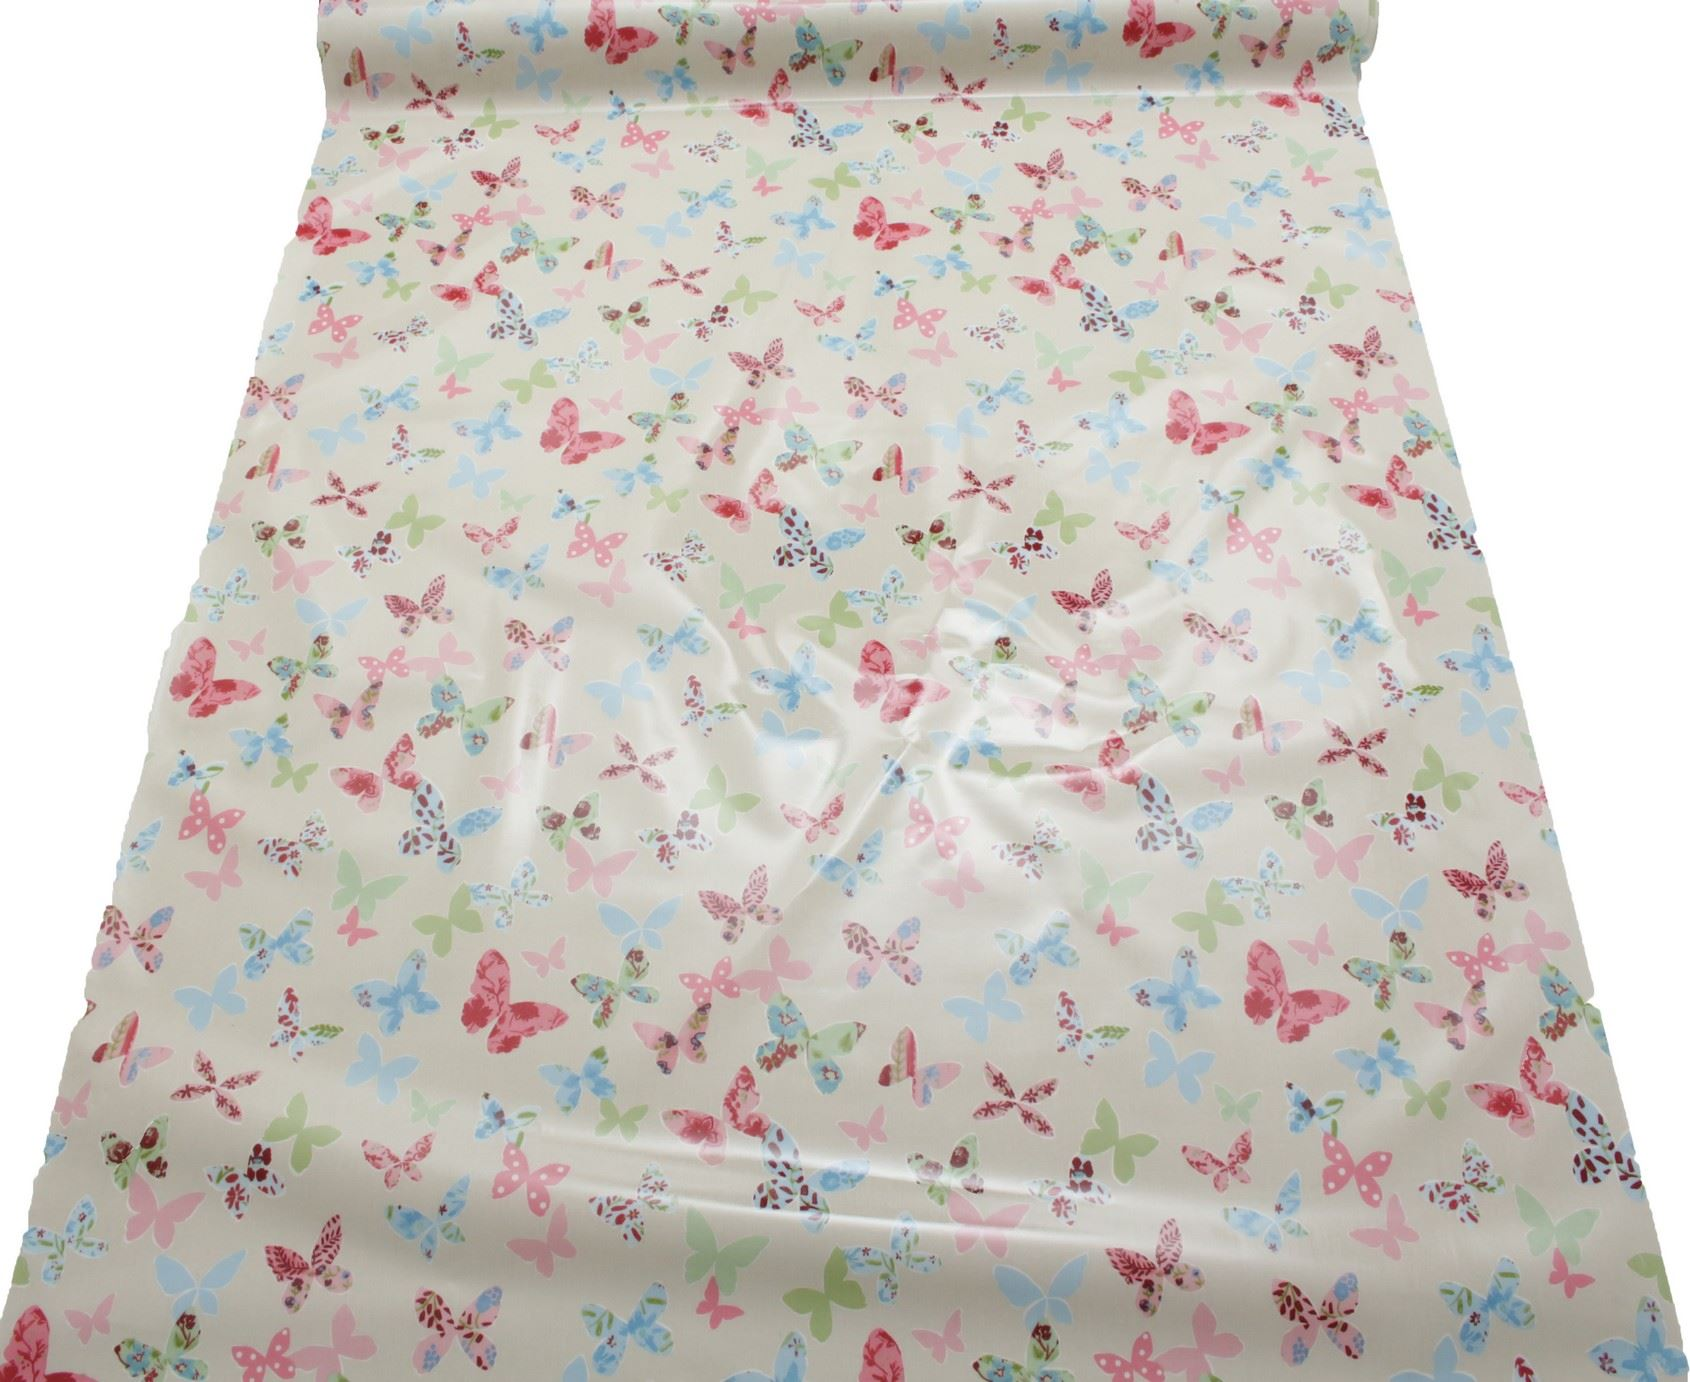 Wedding Linens Inc., since year , has been in the wedding supply business with its own factory and mill to manufacture our inventory of very high quality table linens, table covers, chair covers, chair sashes, table runners, table overlays, table napkins, table skirts that are perfect for weddings, special events and occasions.